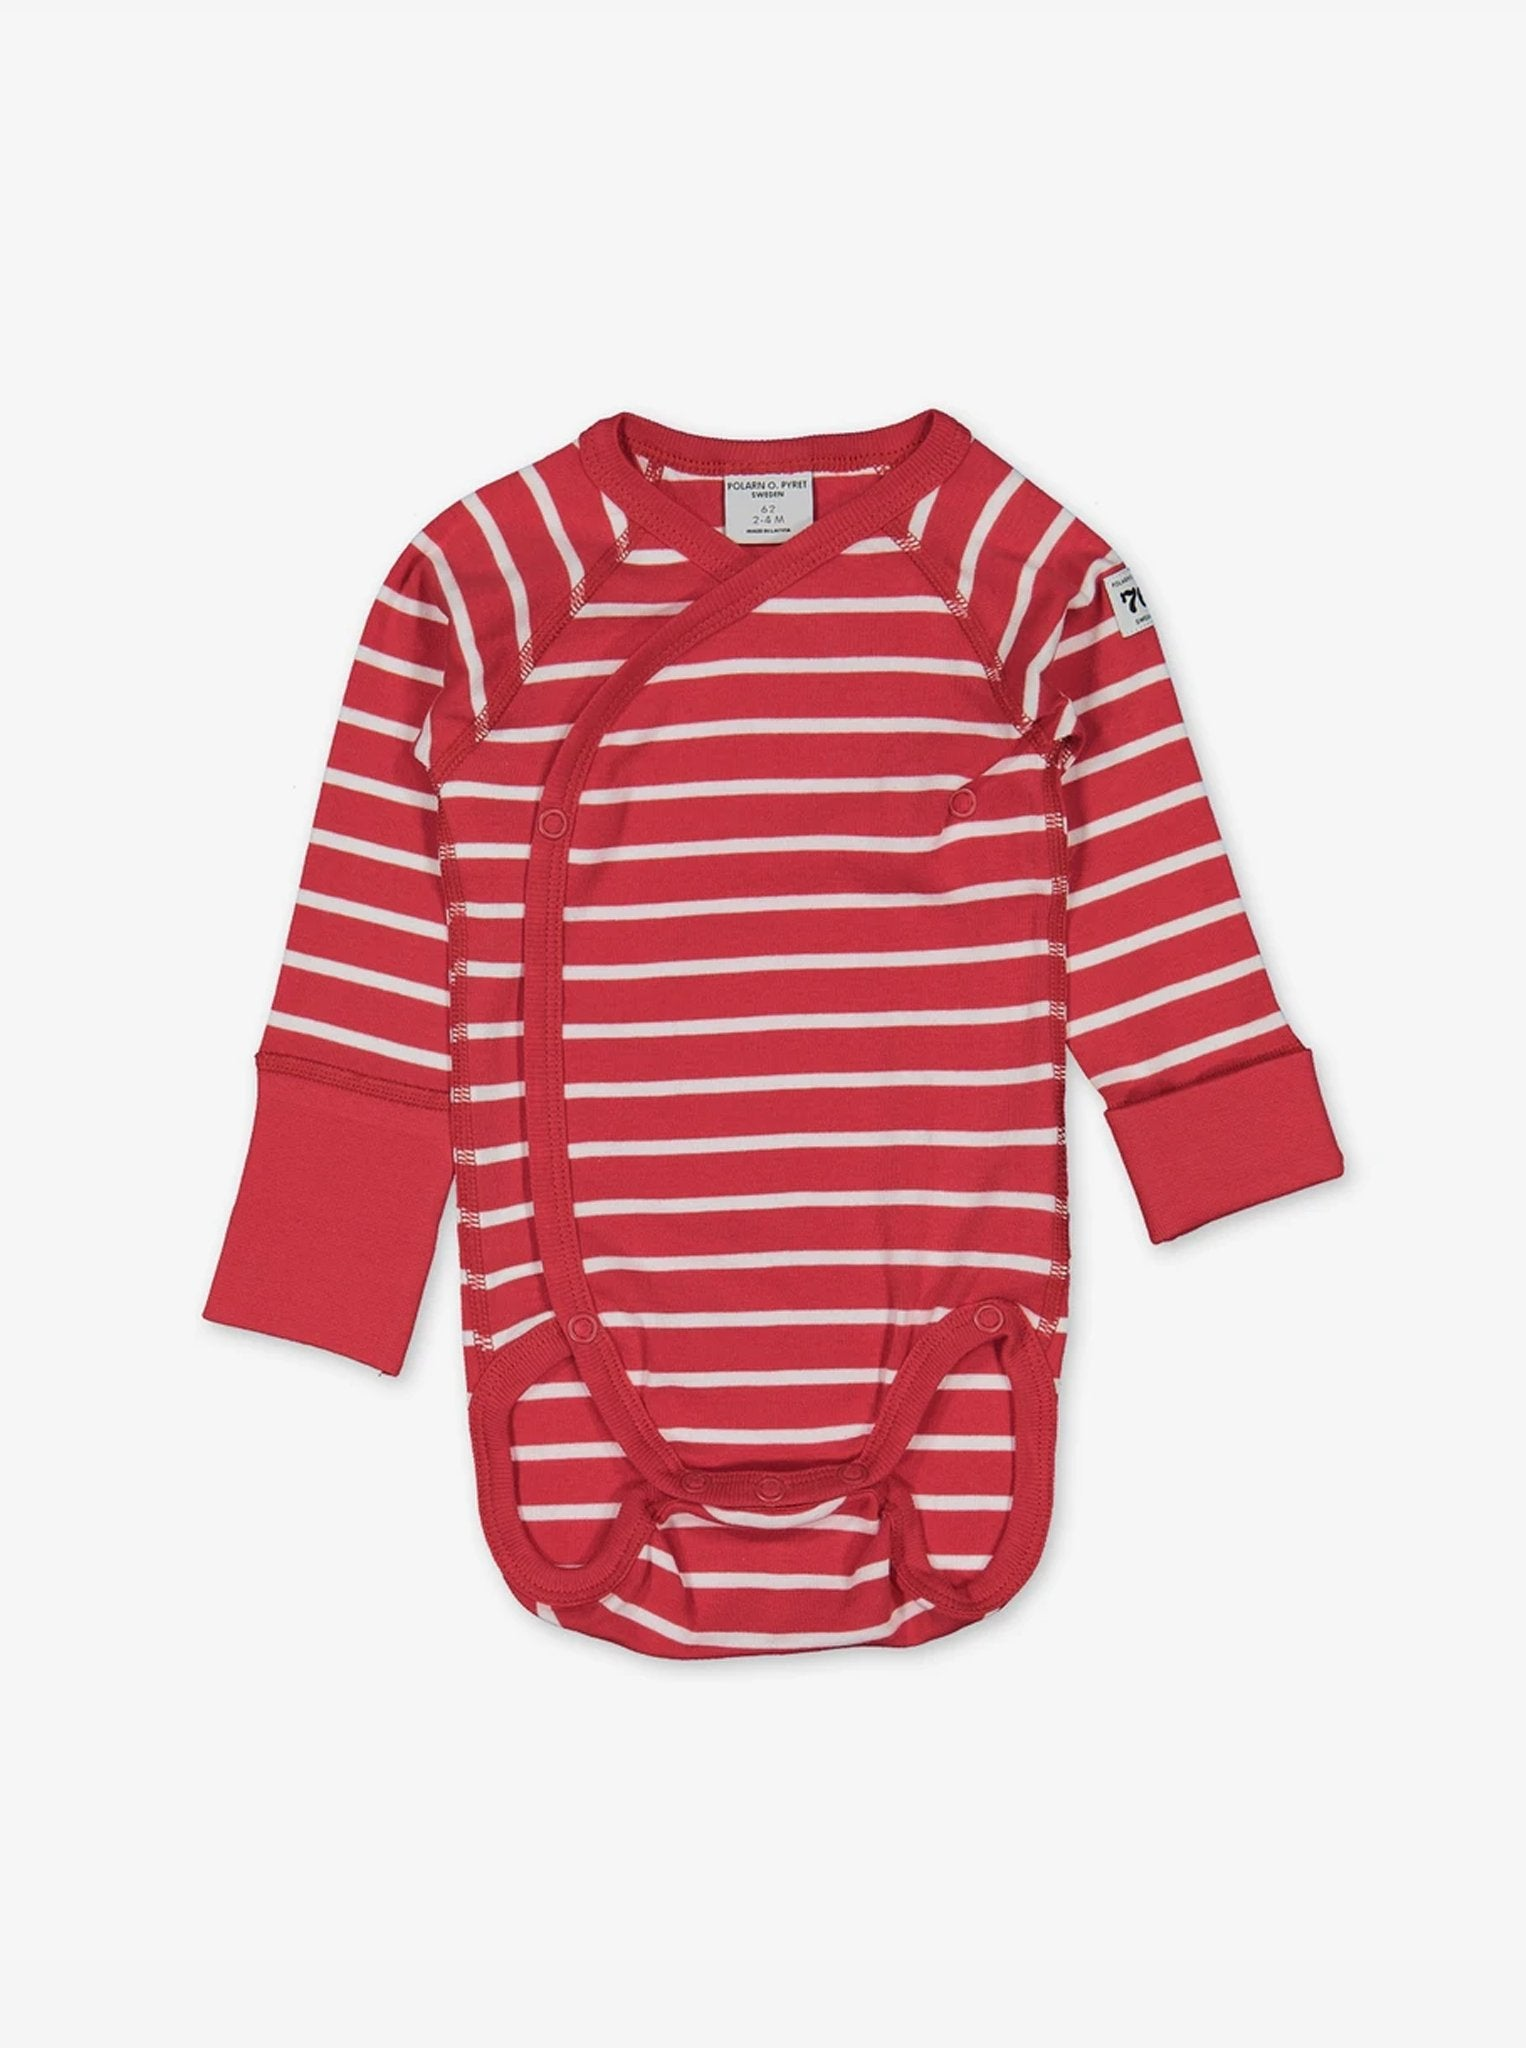 Red and white striped babygrow for preterm newborn babies in a wraparound style, made from 100% organic cotton fabric